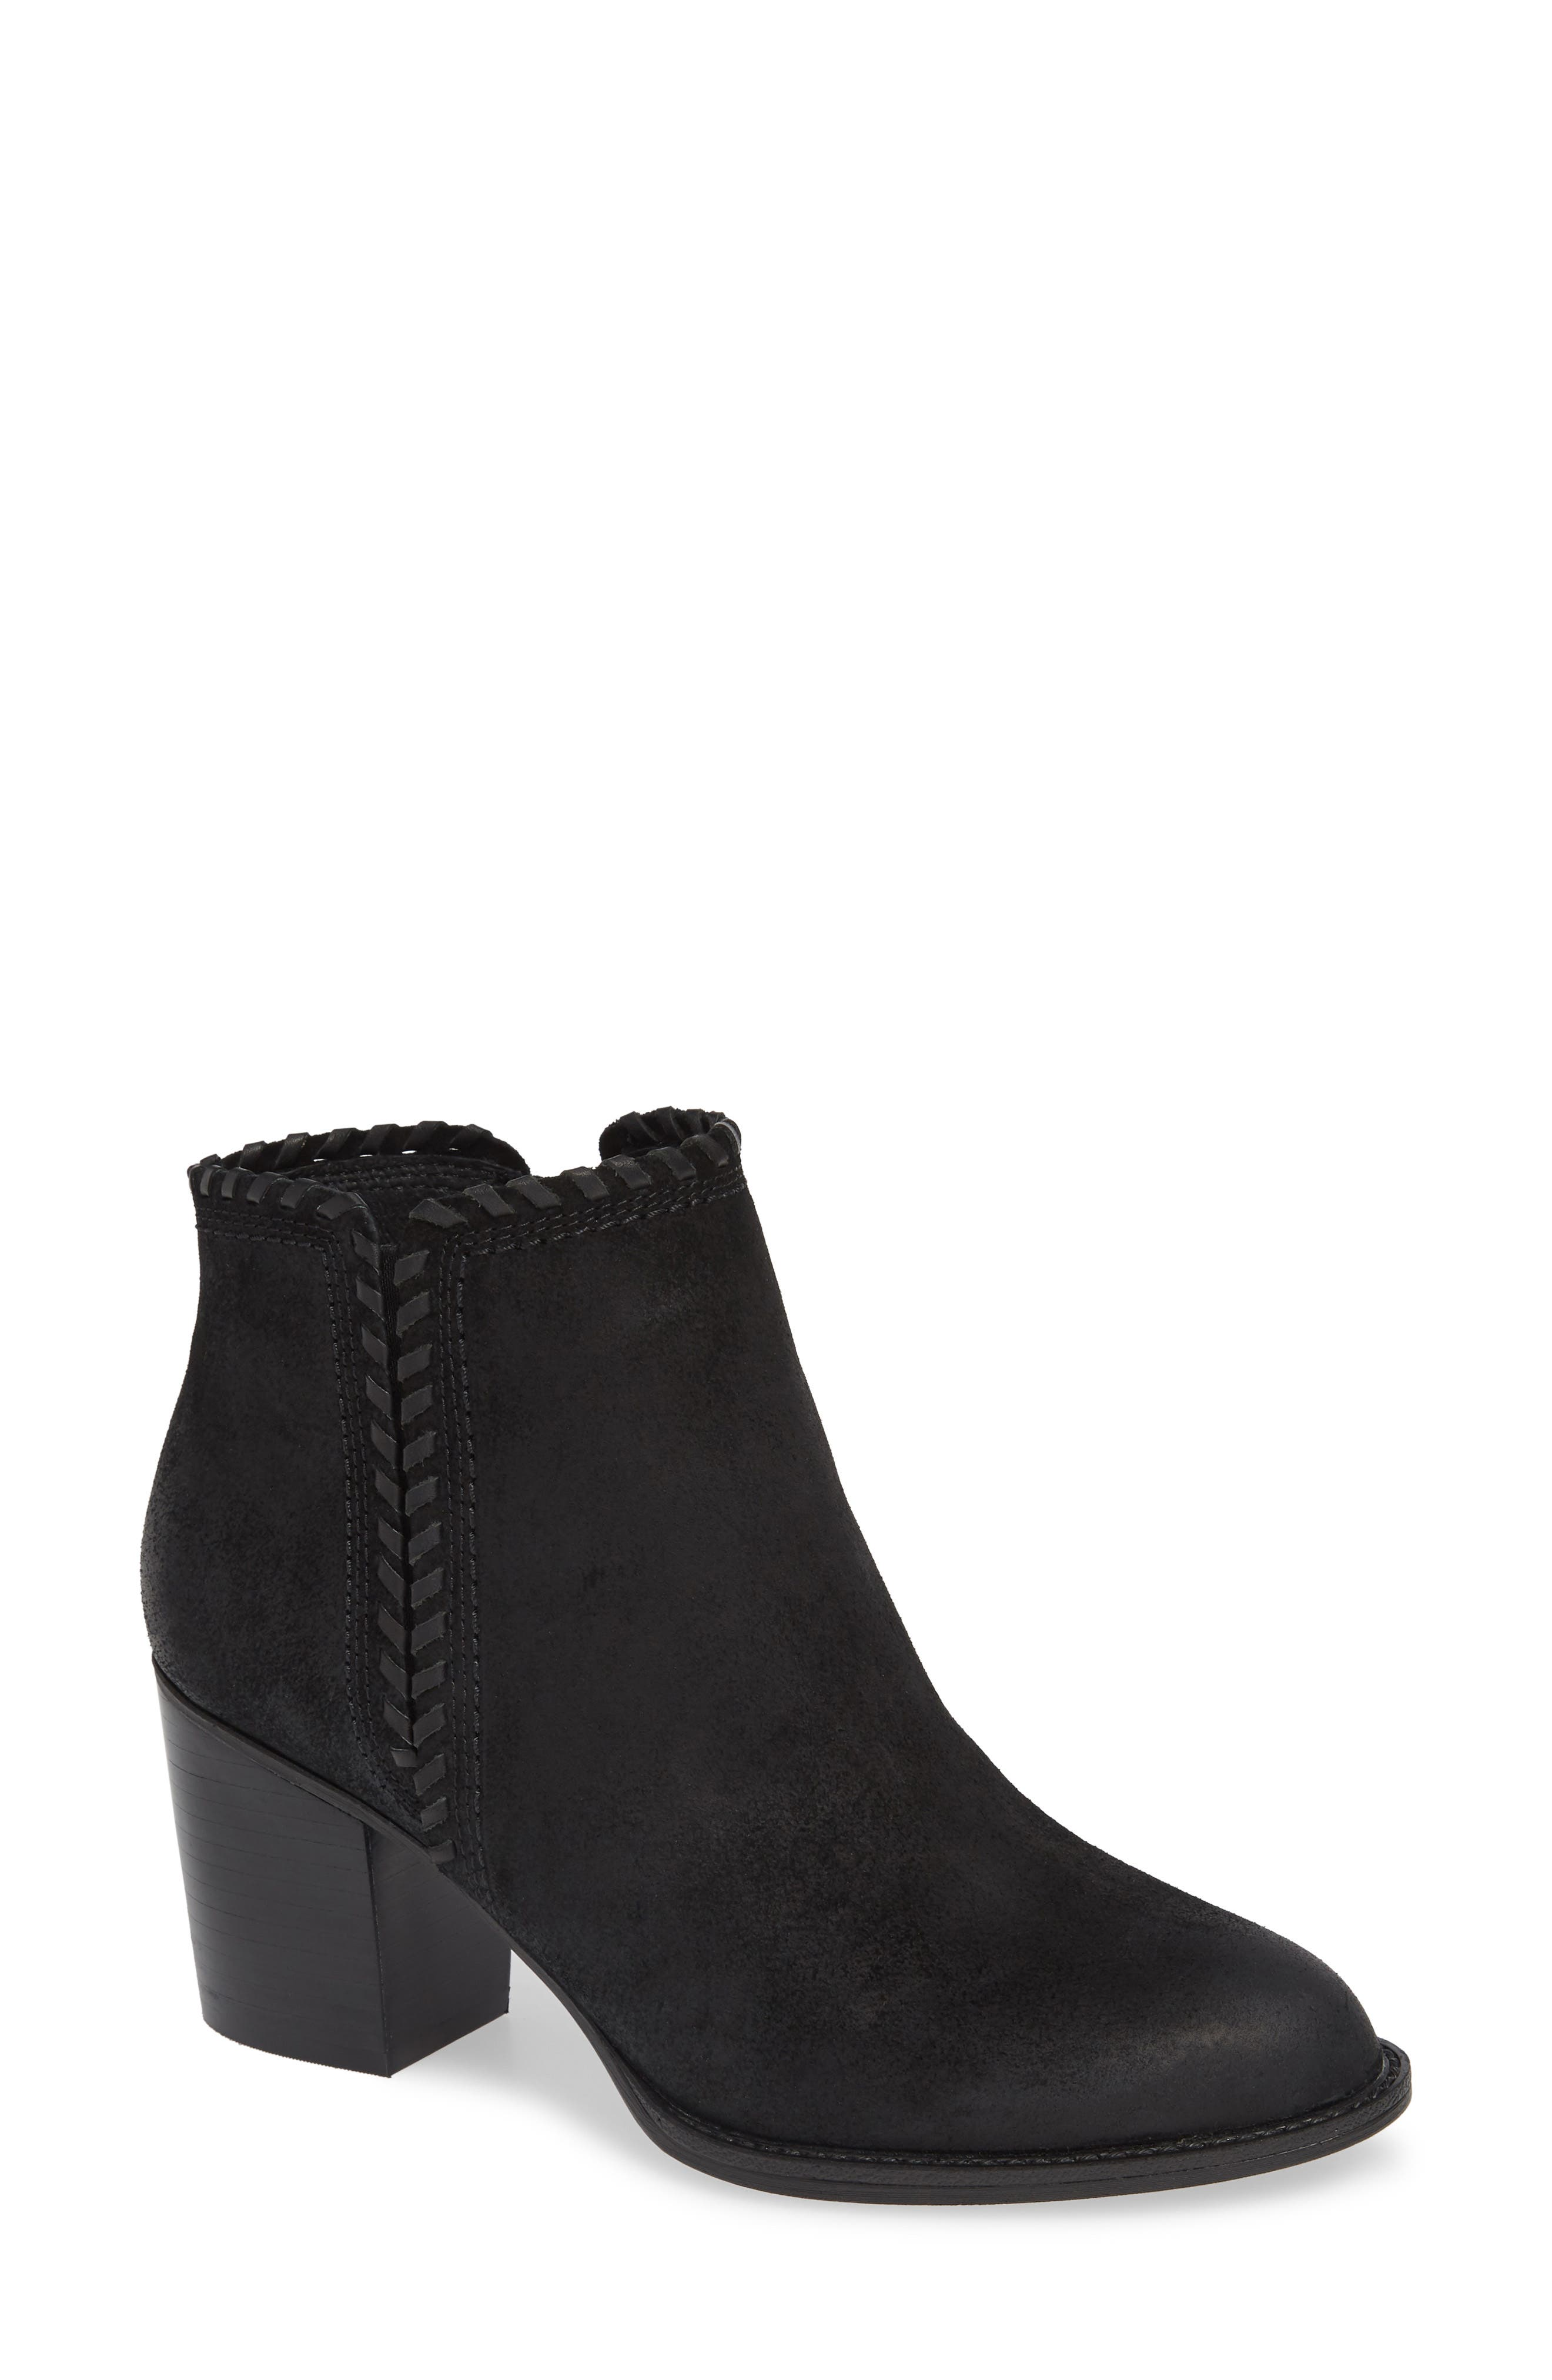 Wilton Bootie,                         Main,                         color, BLACK SUEDE